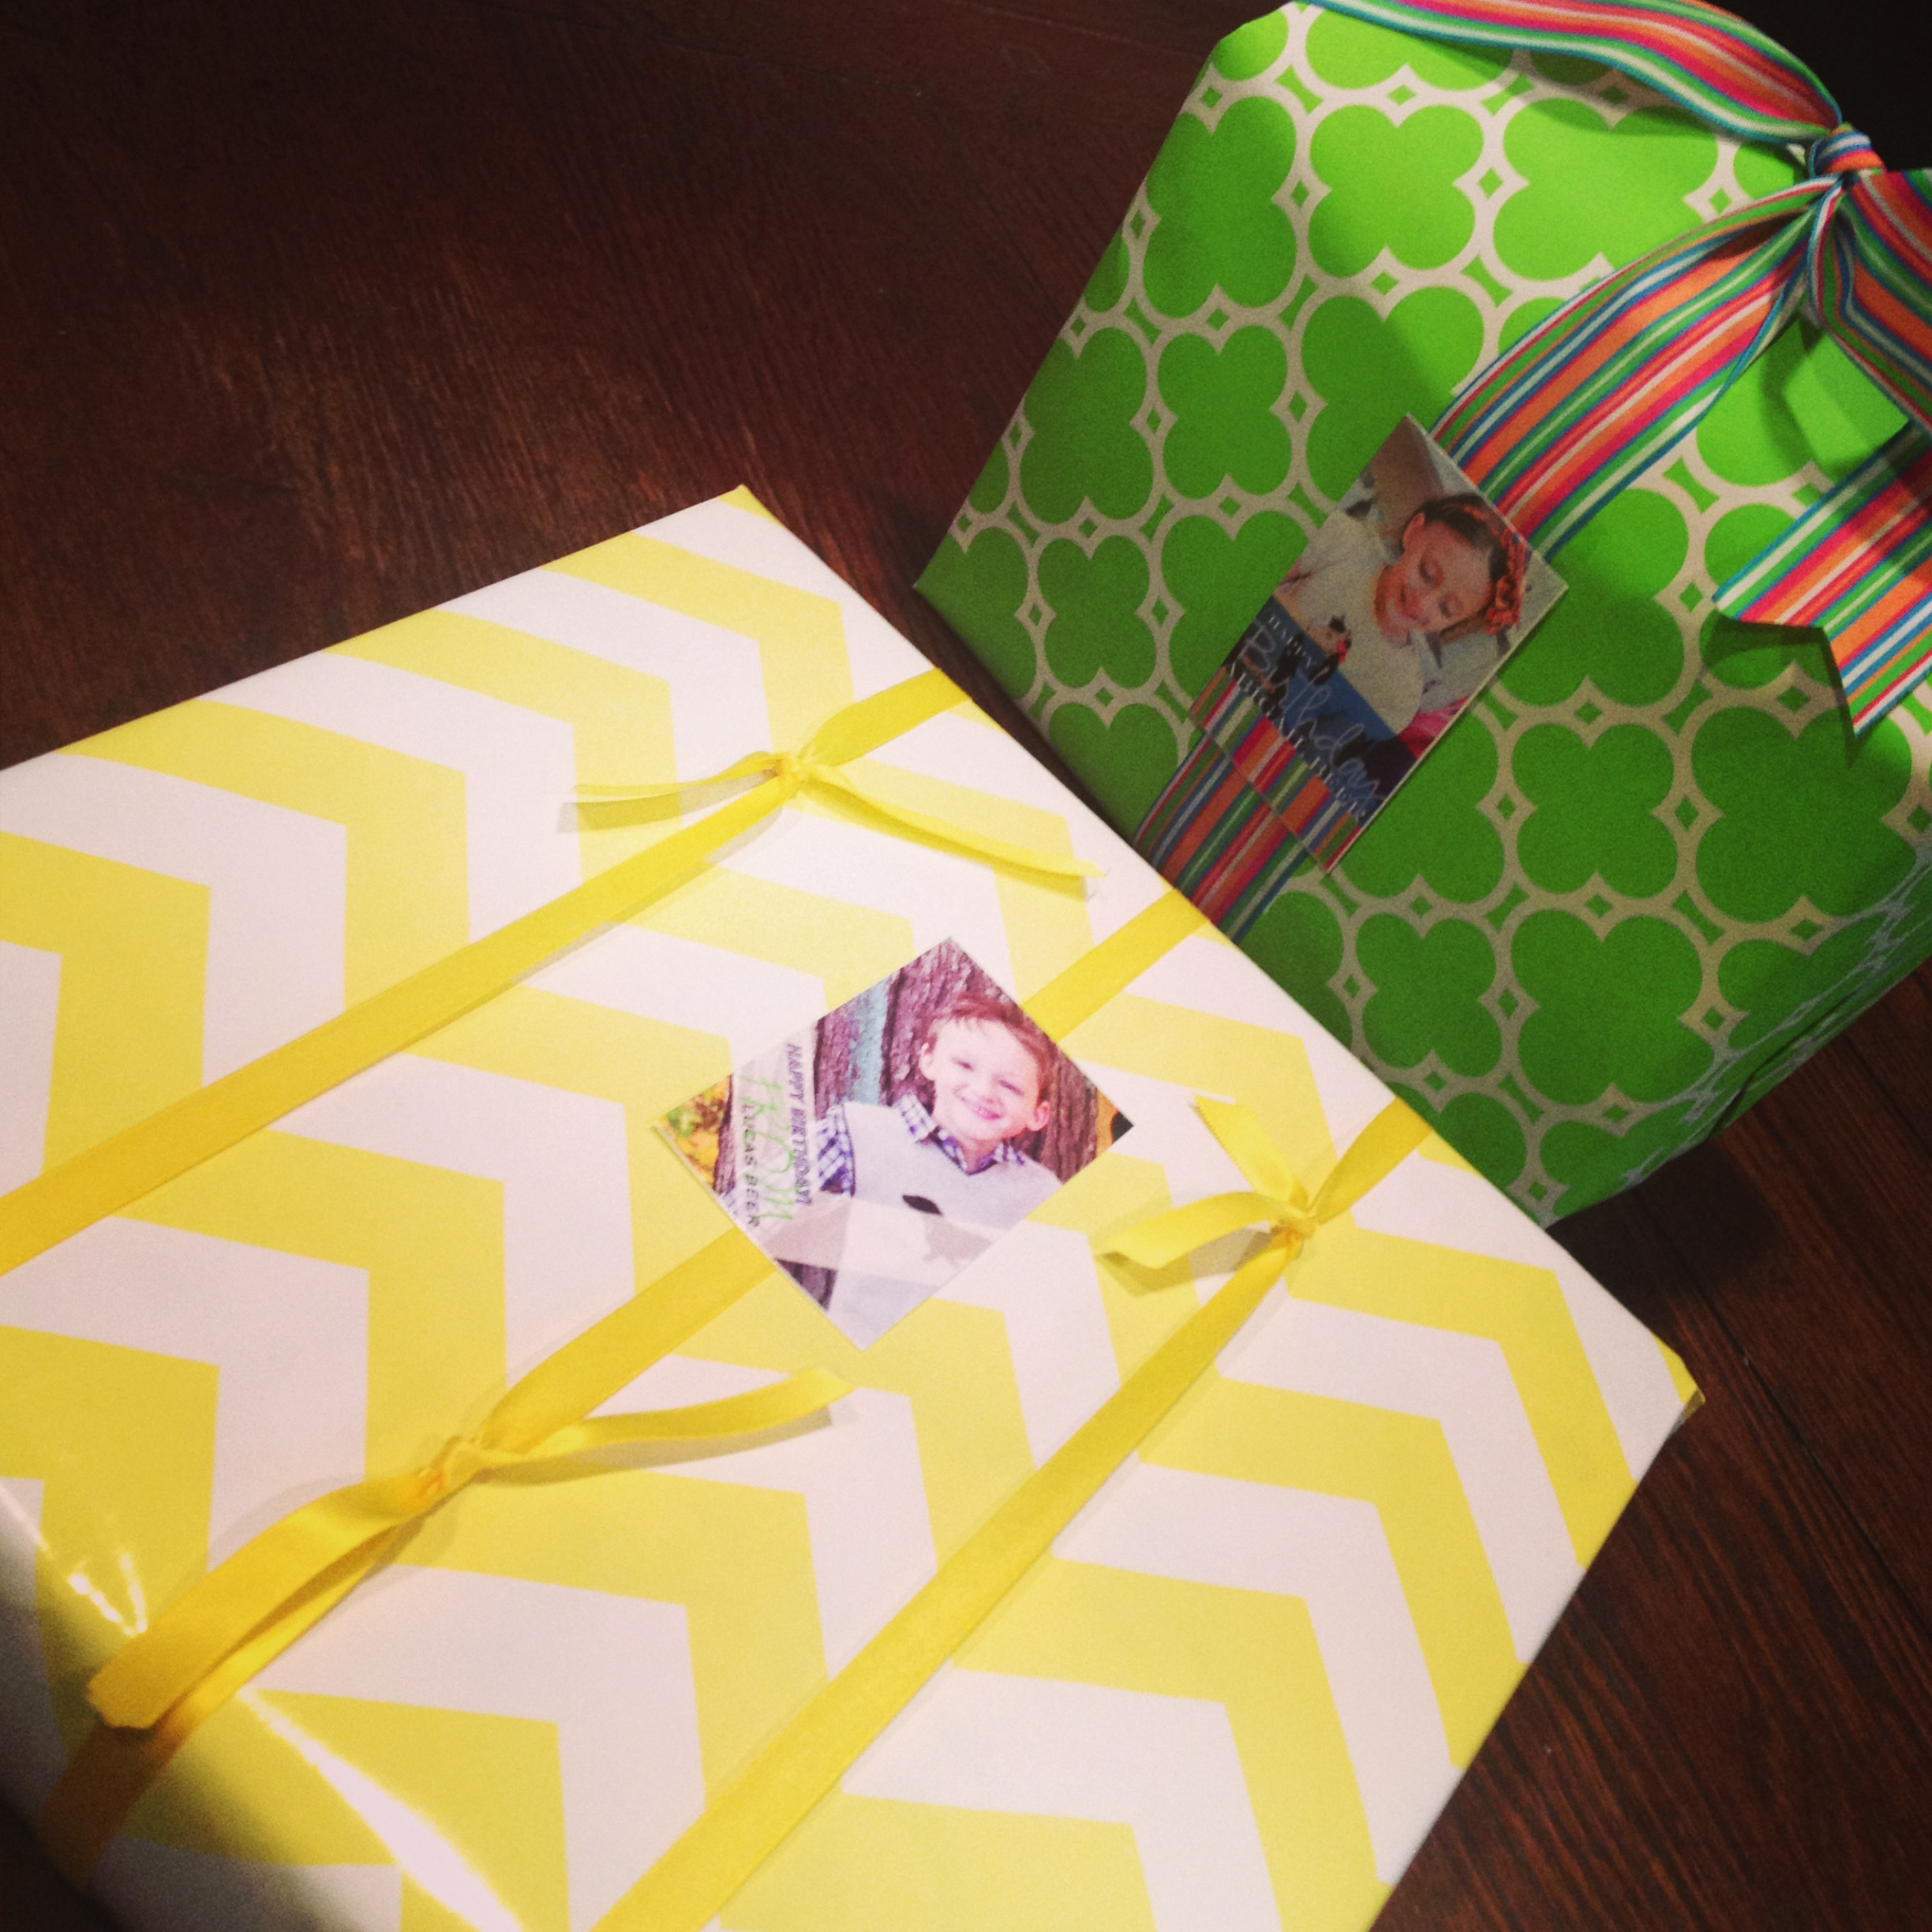 Pre-wrapped gifts, complete with personalized photo gift tags